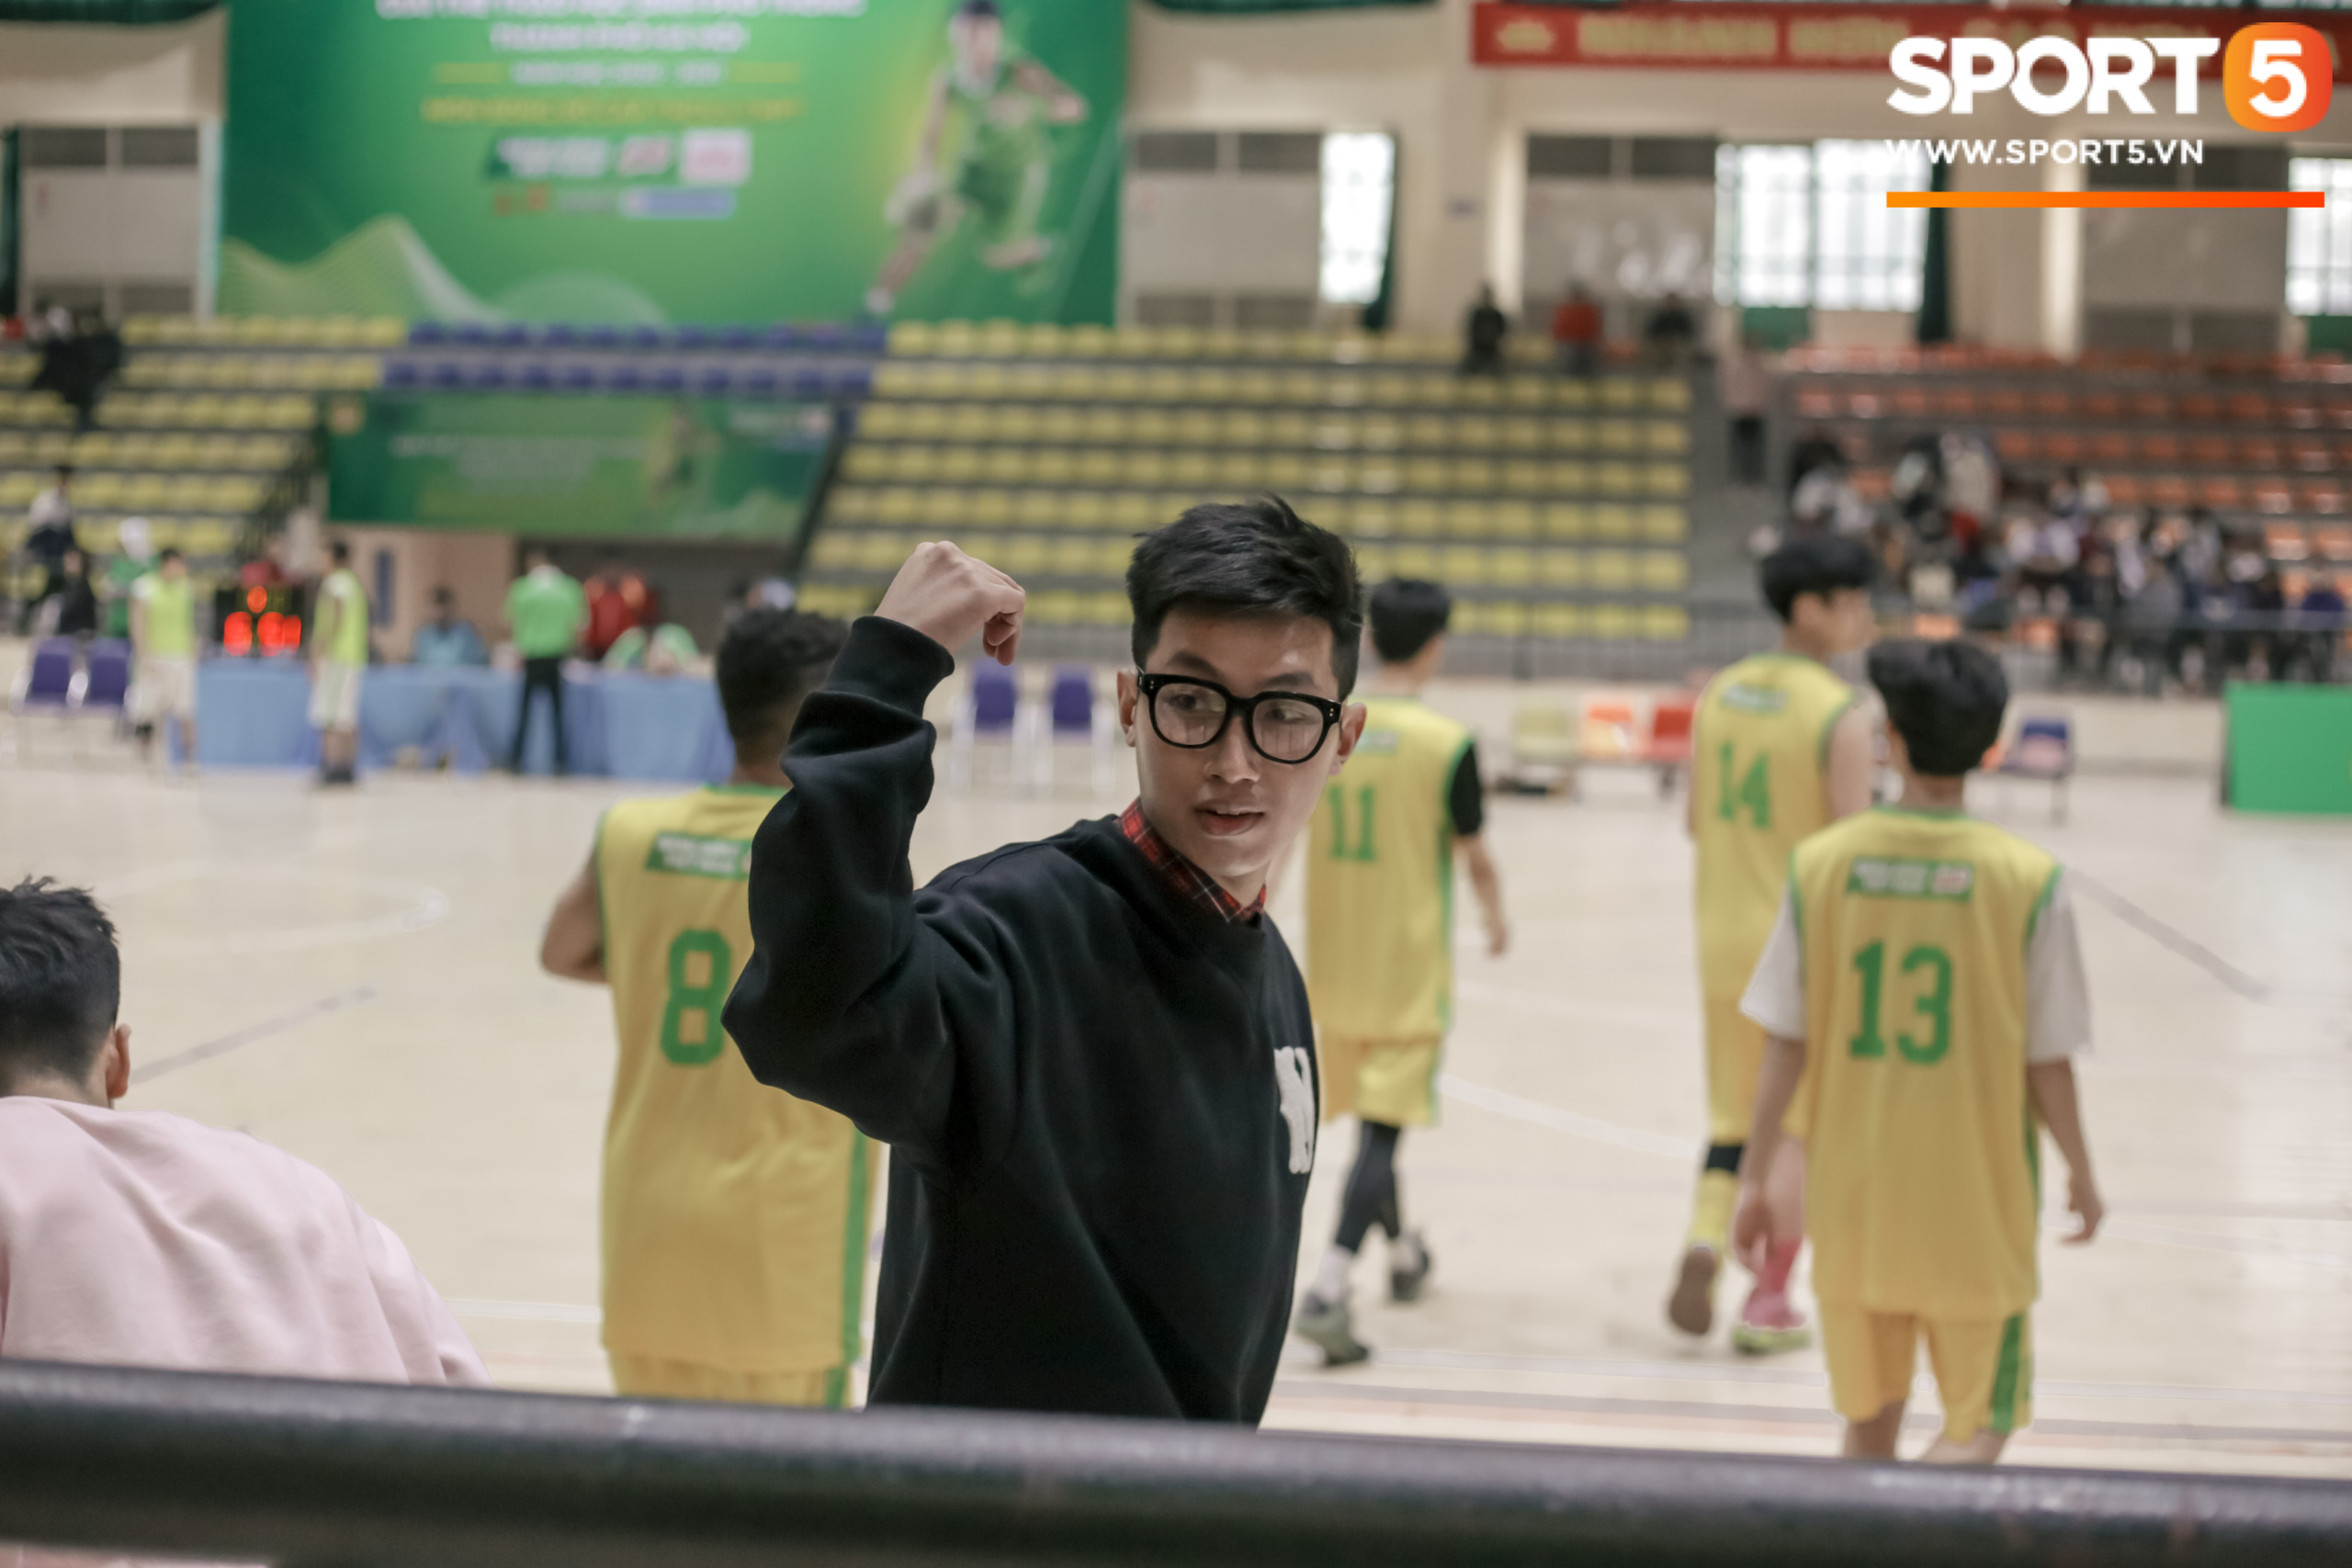 The basketball team of Xuan Mai High School caused a fever with the view from above, the screen of deception made everyone lose their heart - Photo 5.